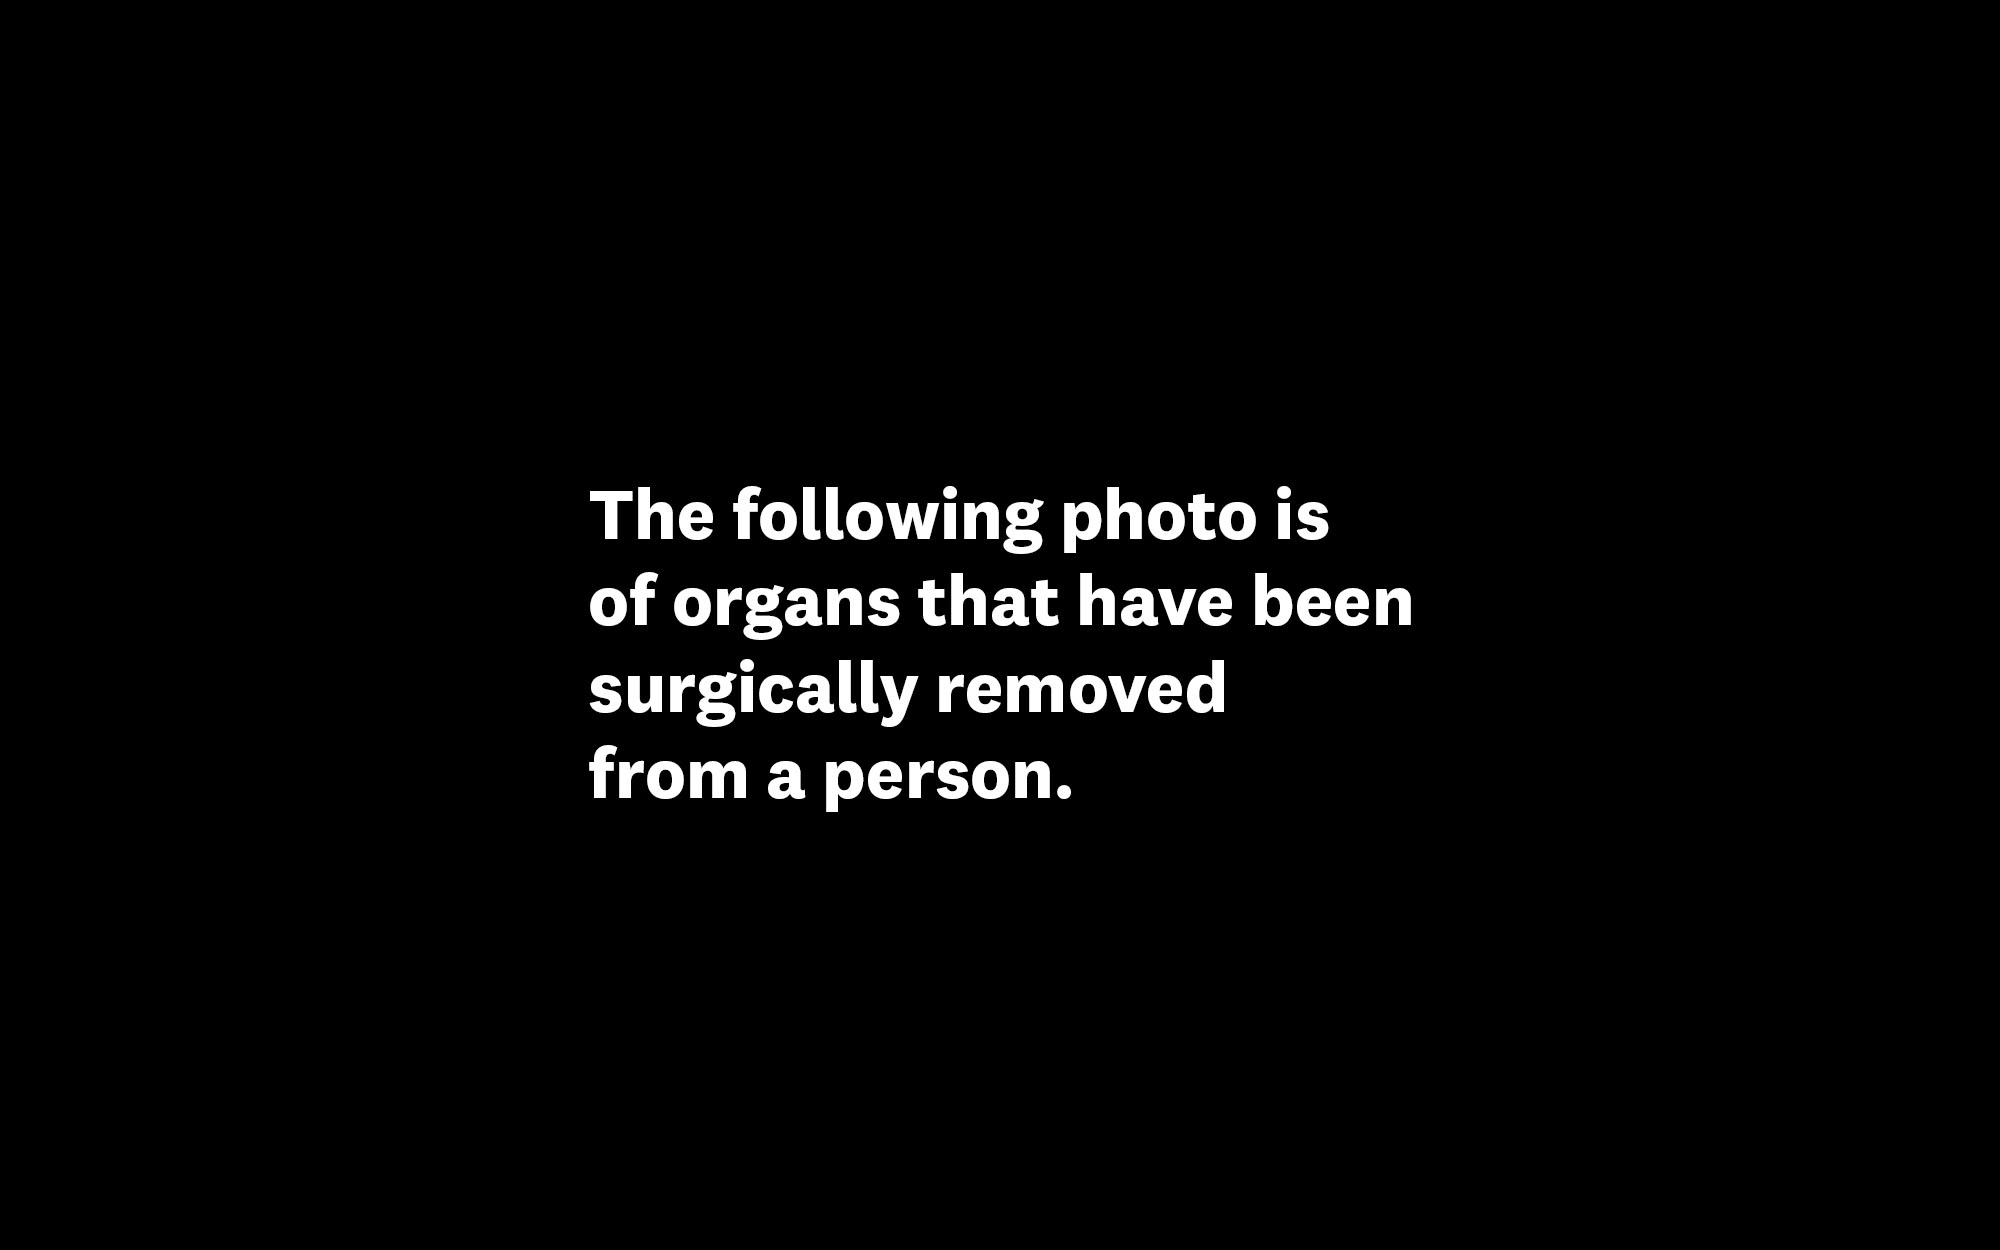 The following photo is of organs that have been surgically removed from a person.